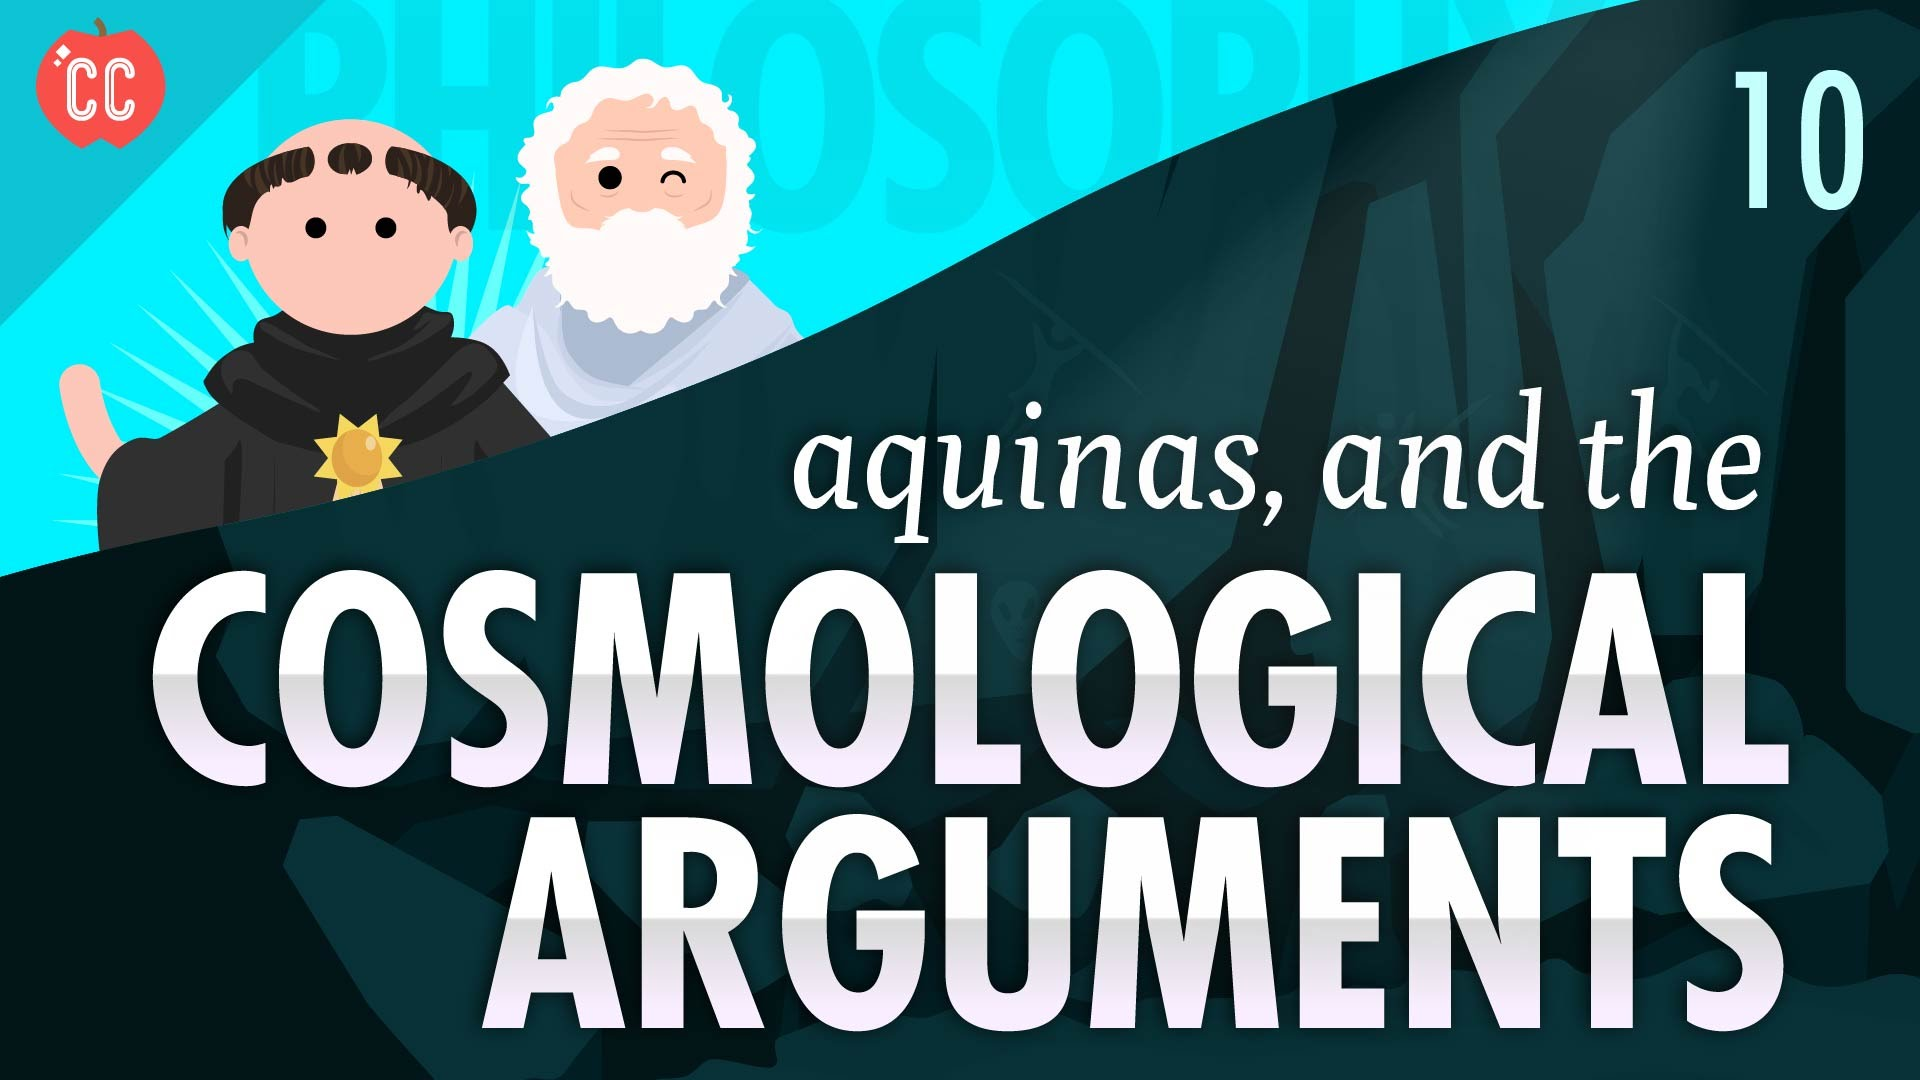 TO FOLLOW THE SECOND WAY OF AQUINAS